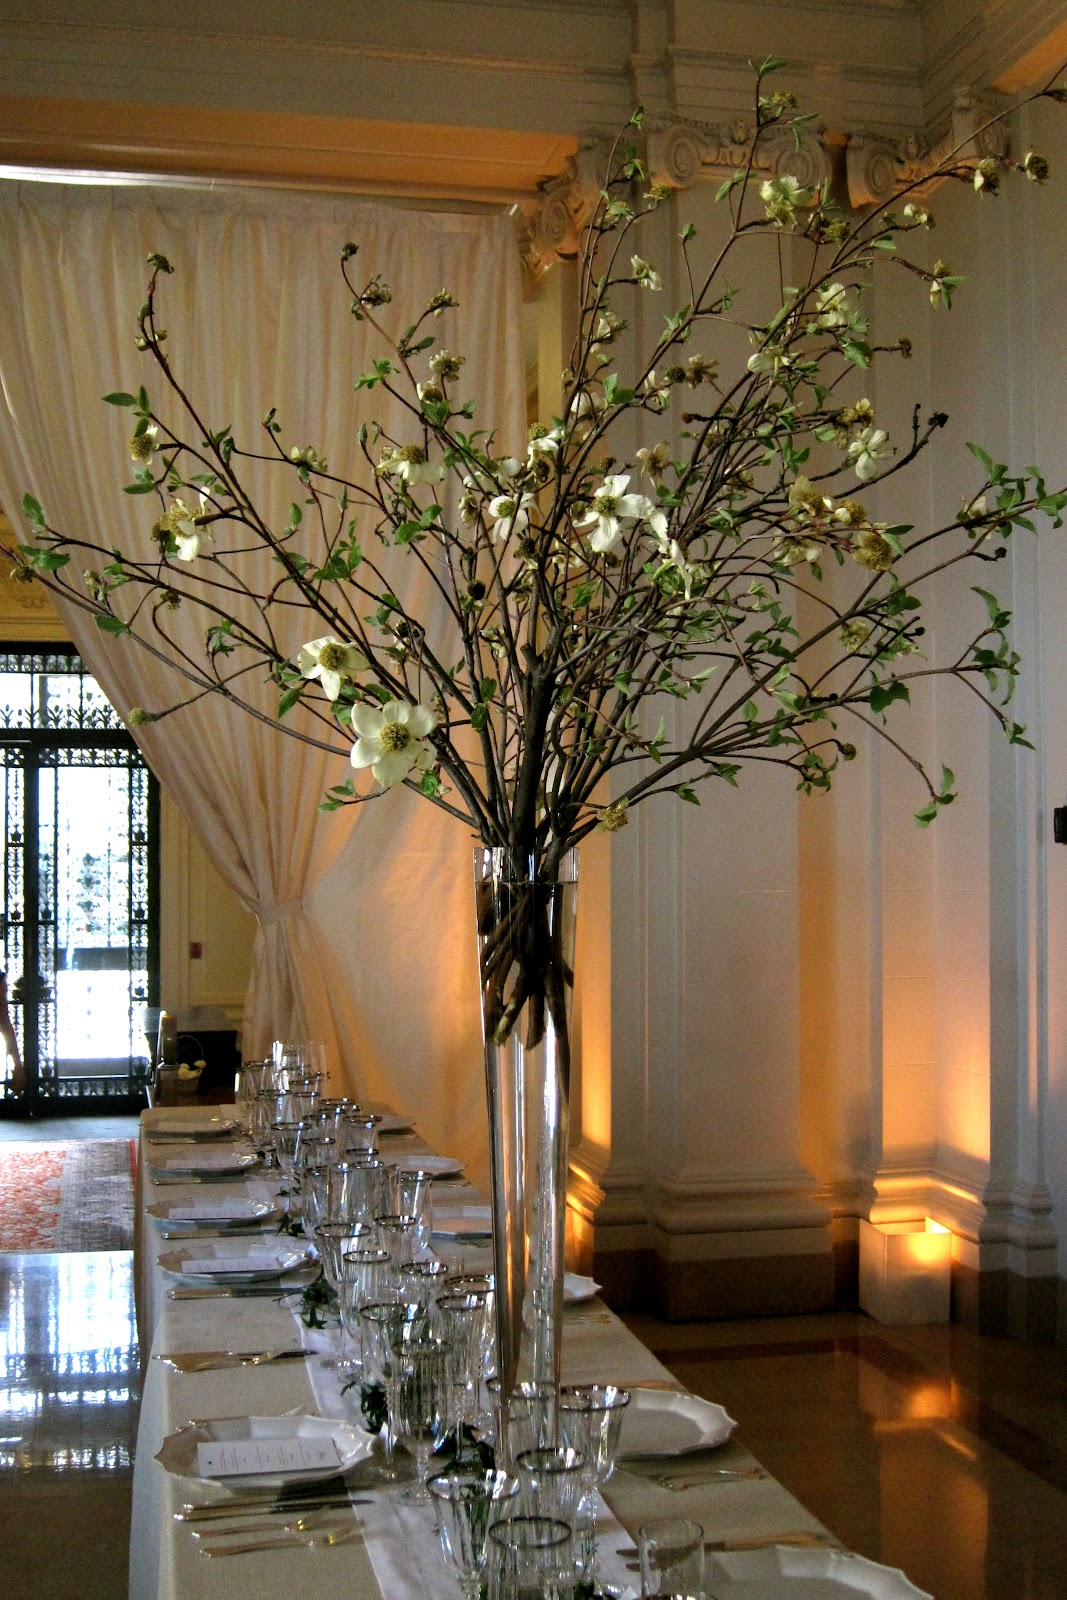 Michael daigian design memorial day weekend madness we created five tall centerpieces in glass pilsner vases filled with white blossomed dog wood lush green ivy and jasmine it gave a dramatic and elegant reviewsmspy